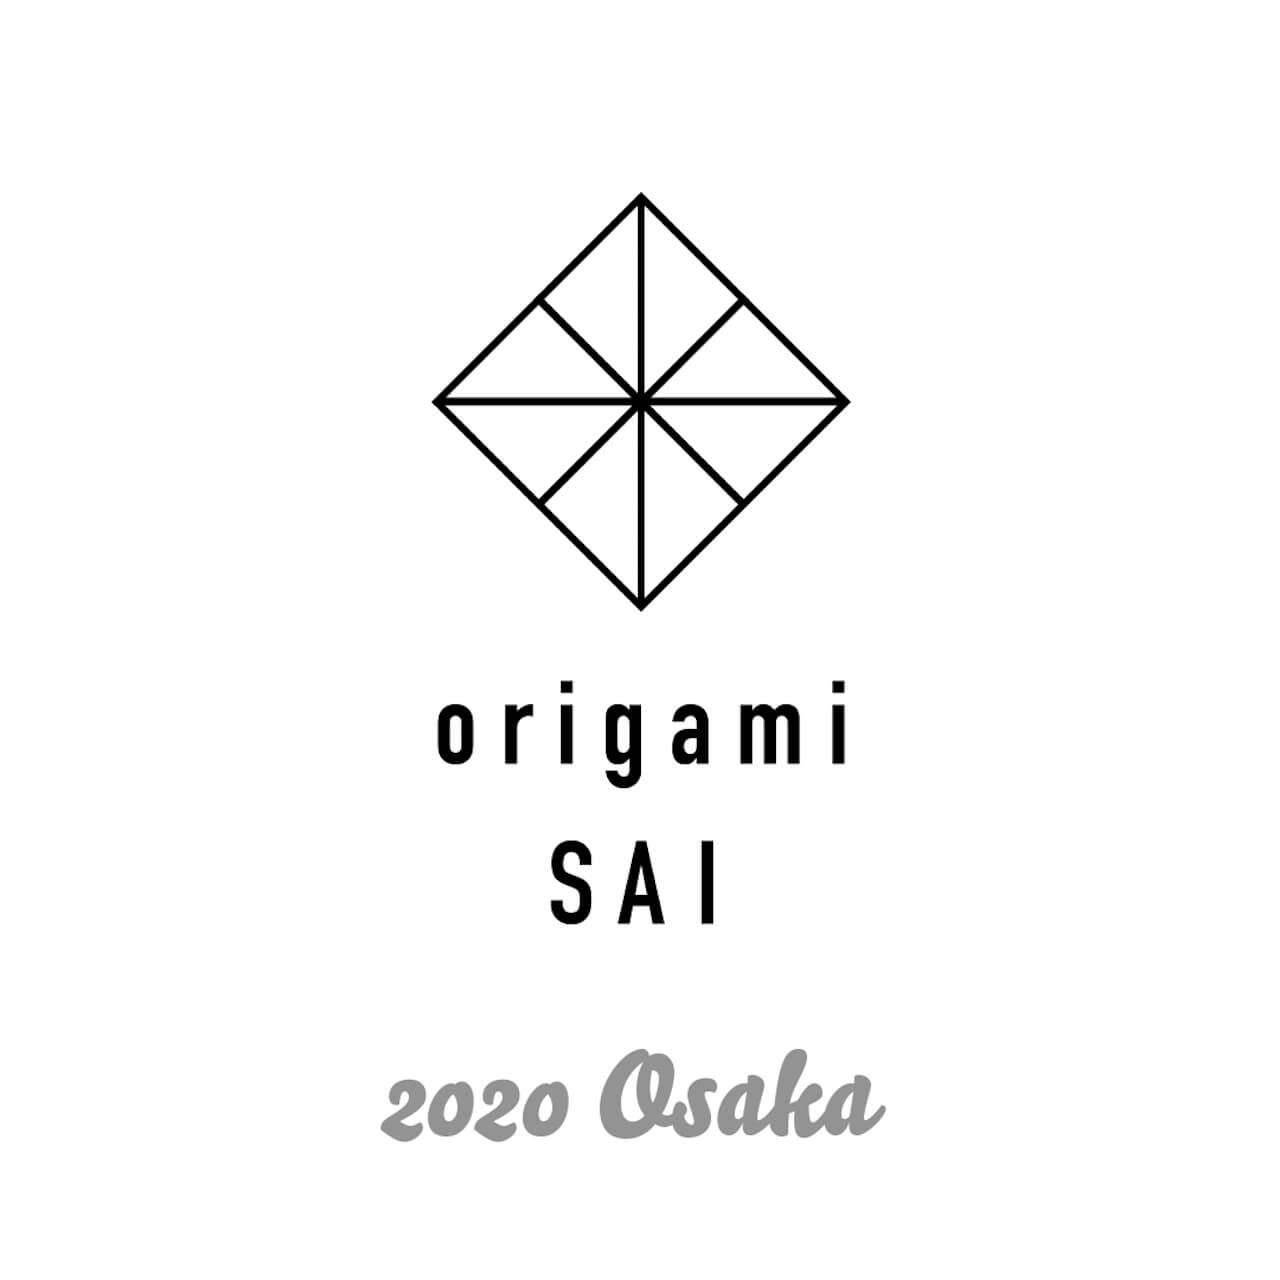 Ovall|Looking Back 2019 ~今年のベストショットは? interview20191213-origami-production-2-2